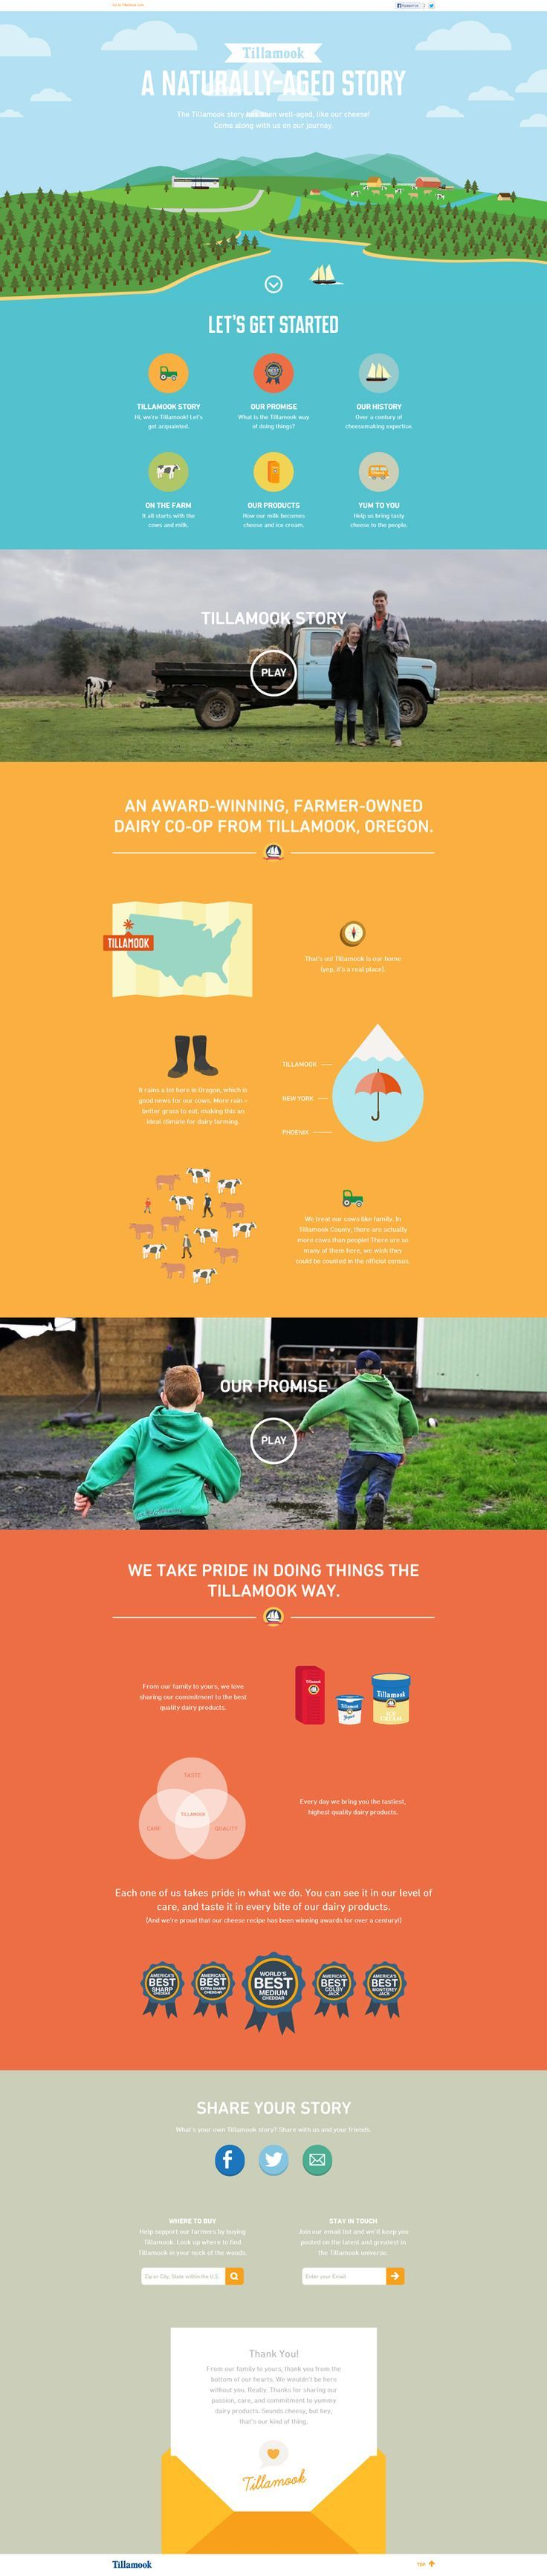 Bright colors in this simple yet beautiful web design